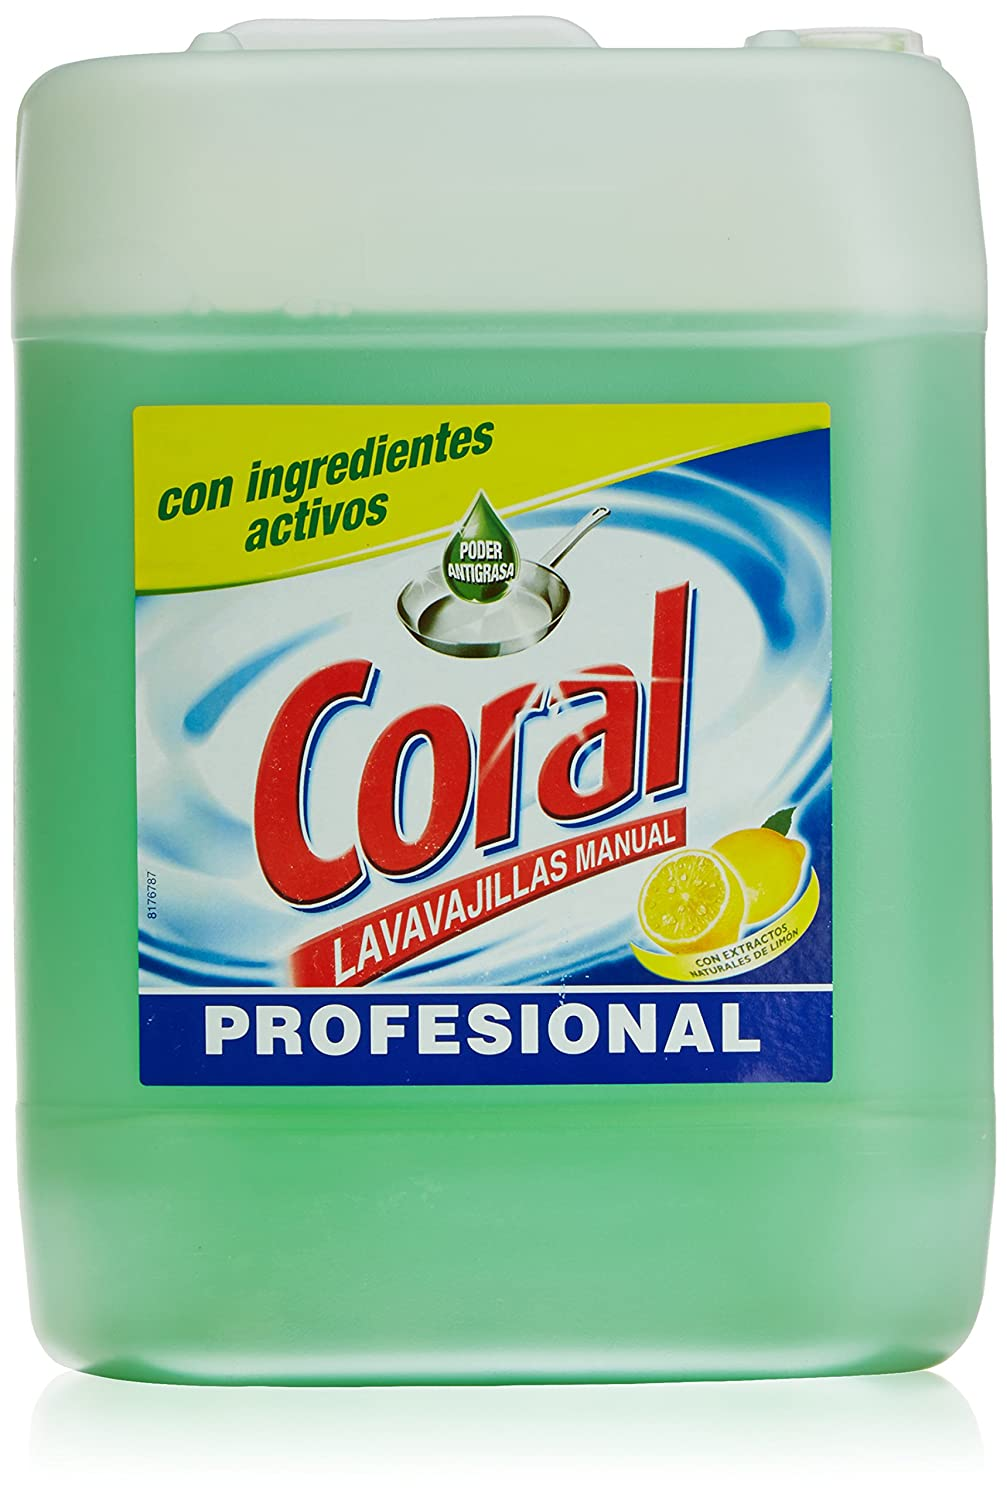 Coral Lavavajillas manual Profesional - 10000 gr: Amazon.es ...